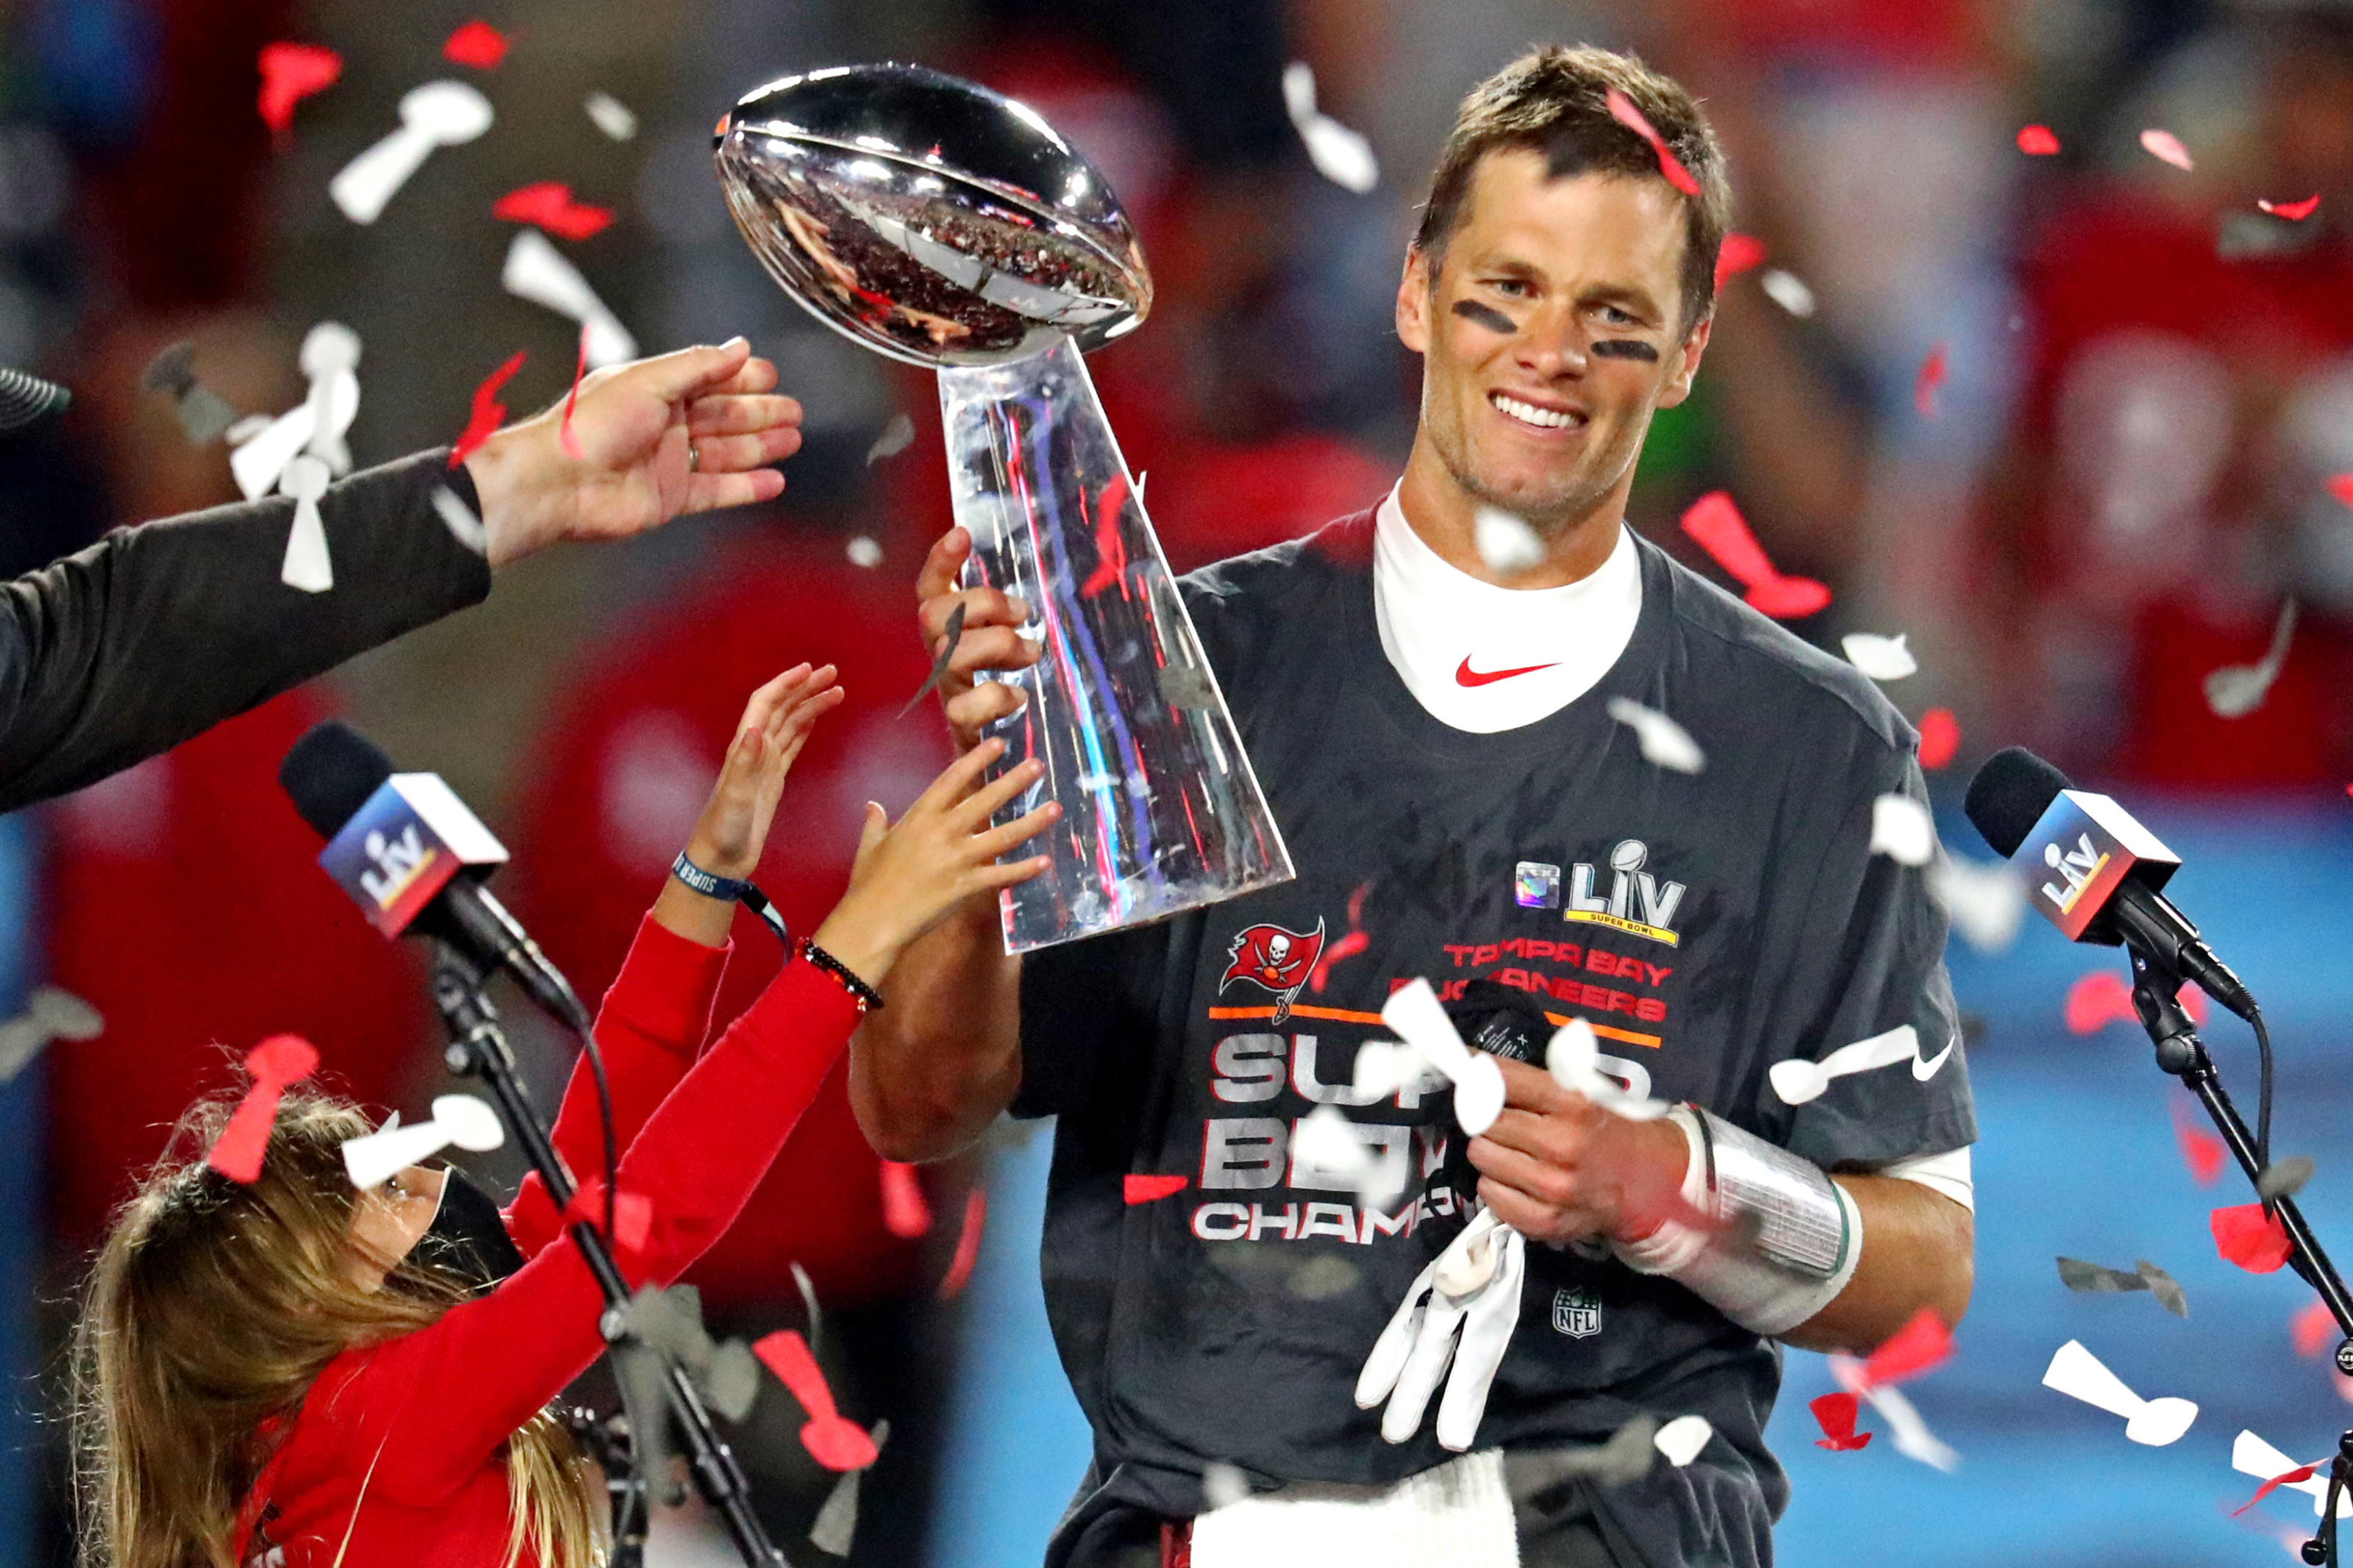 Tom Brady's autograph is increasing in value after Super Bowl 55 win